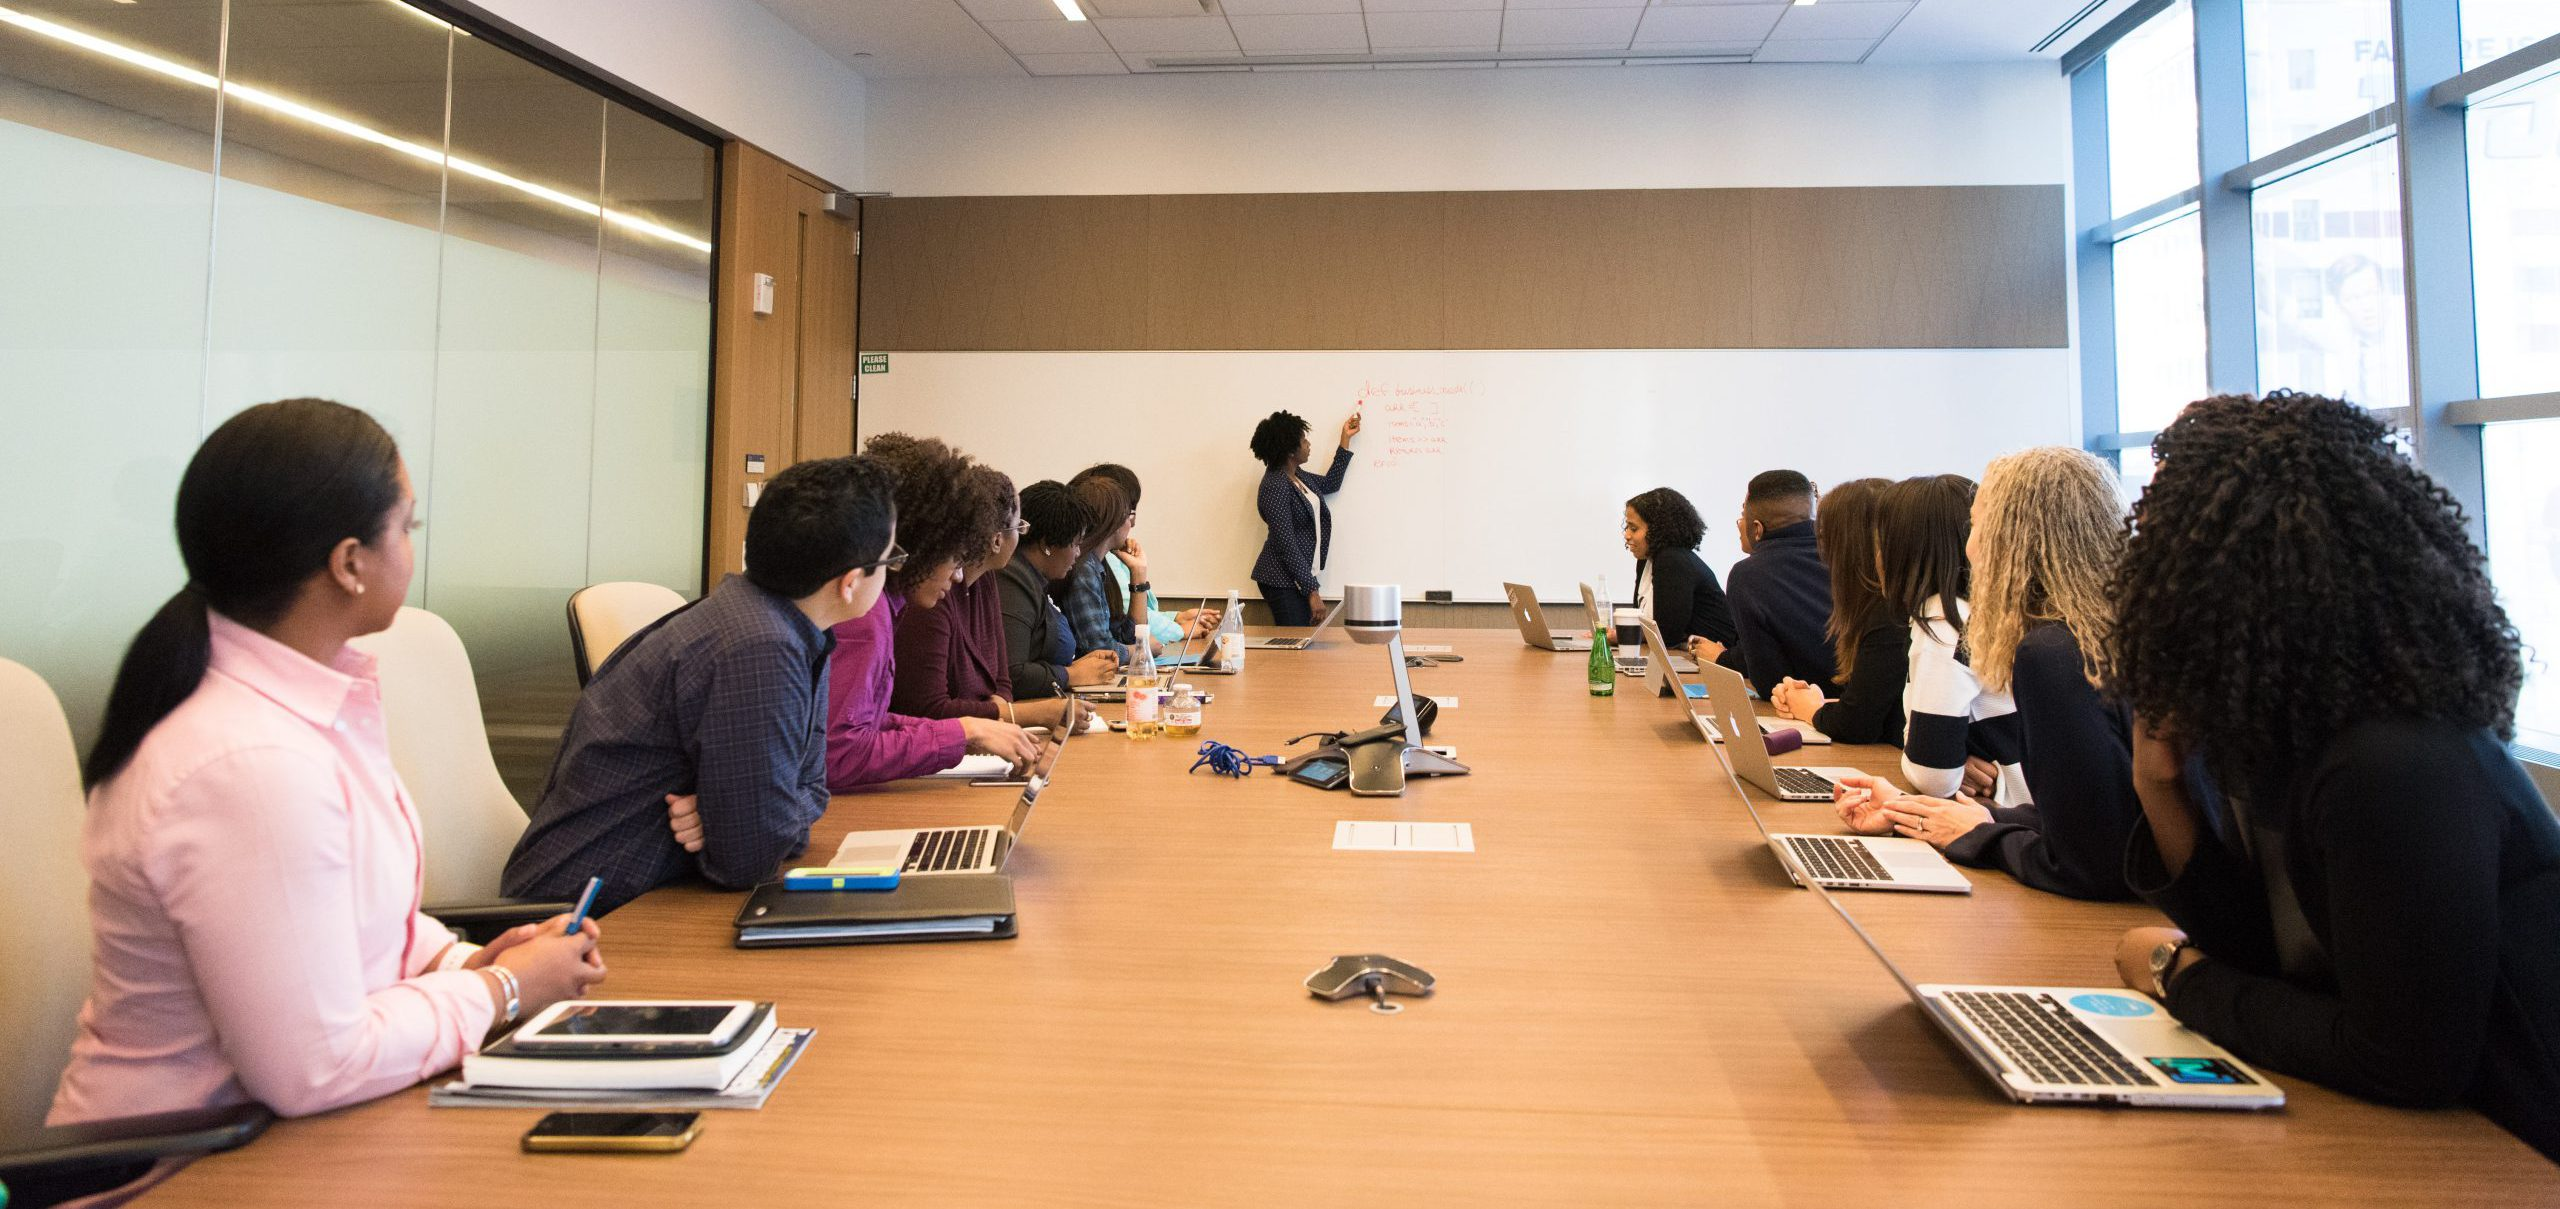 business professionals having meeting inside conference room looking at whiteboard